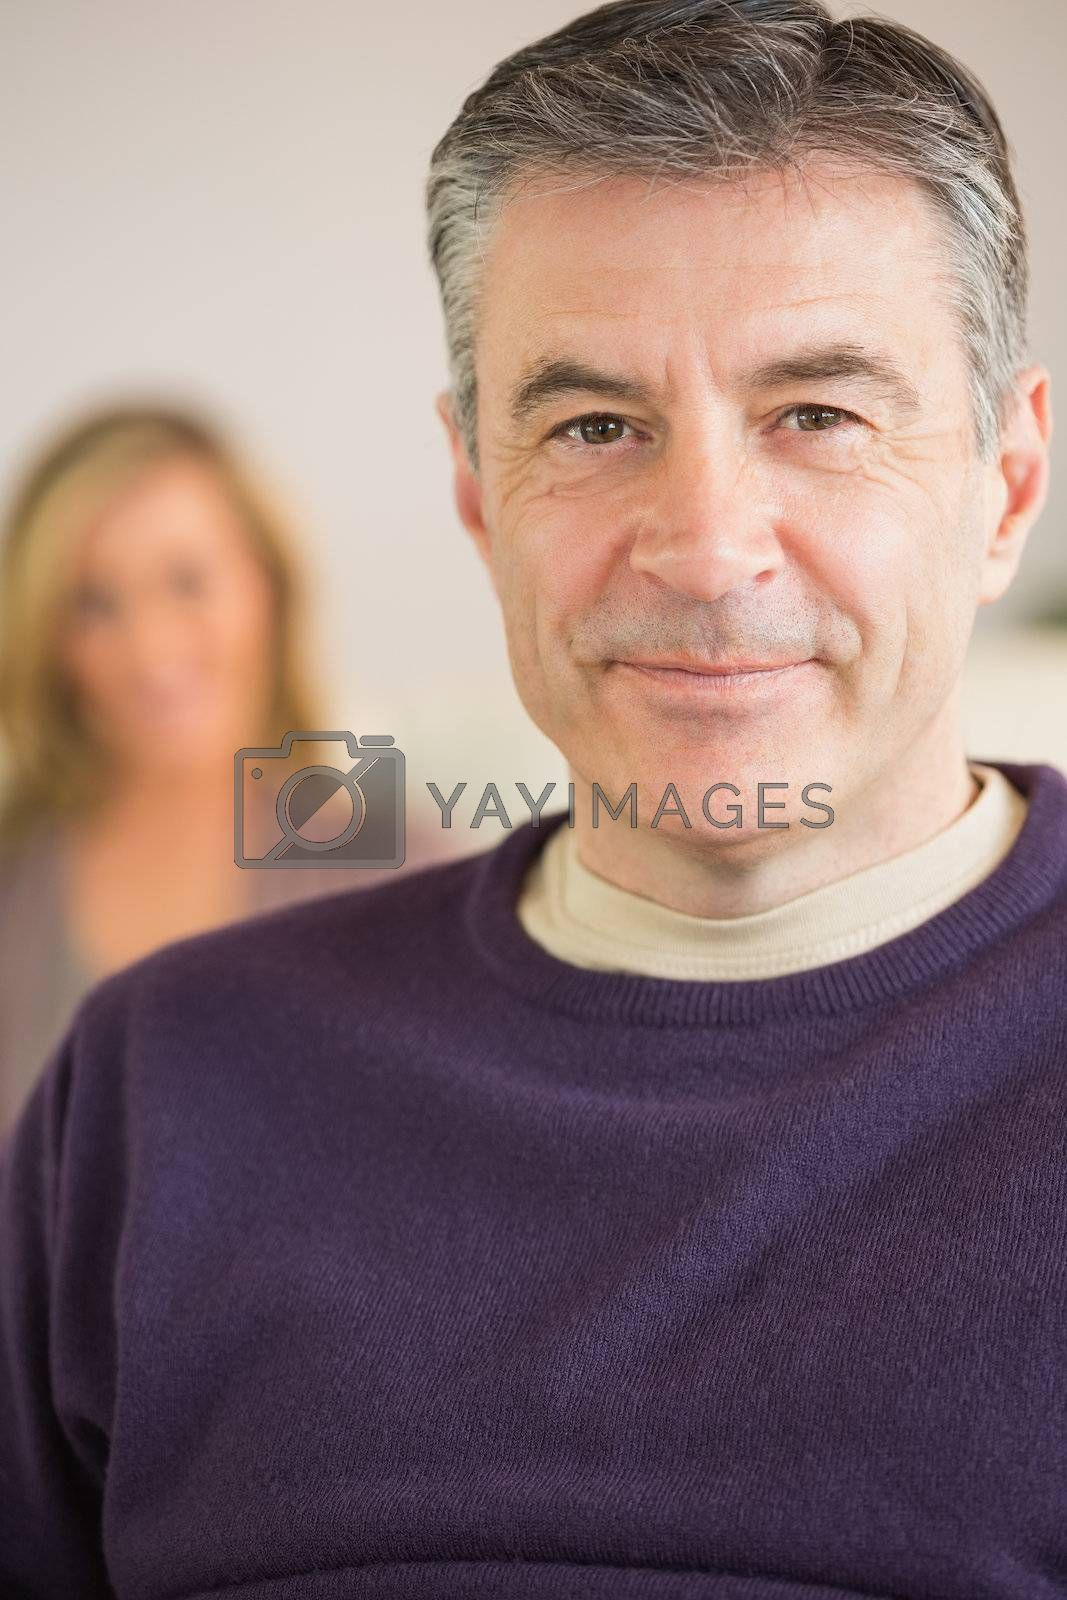 Smiling man with his wife in the background by Wavebreakmedia